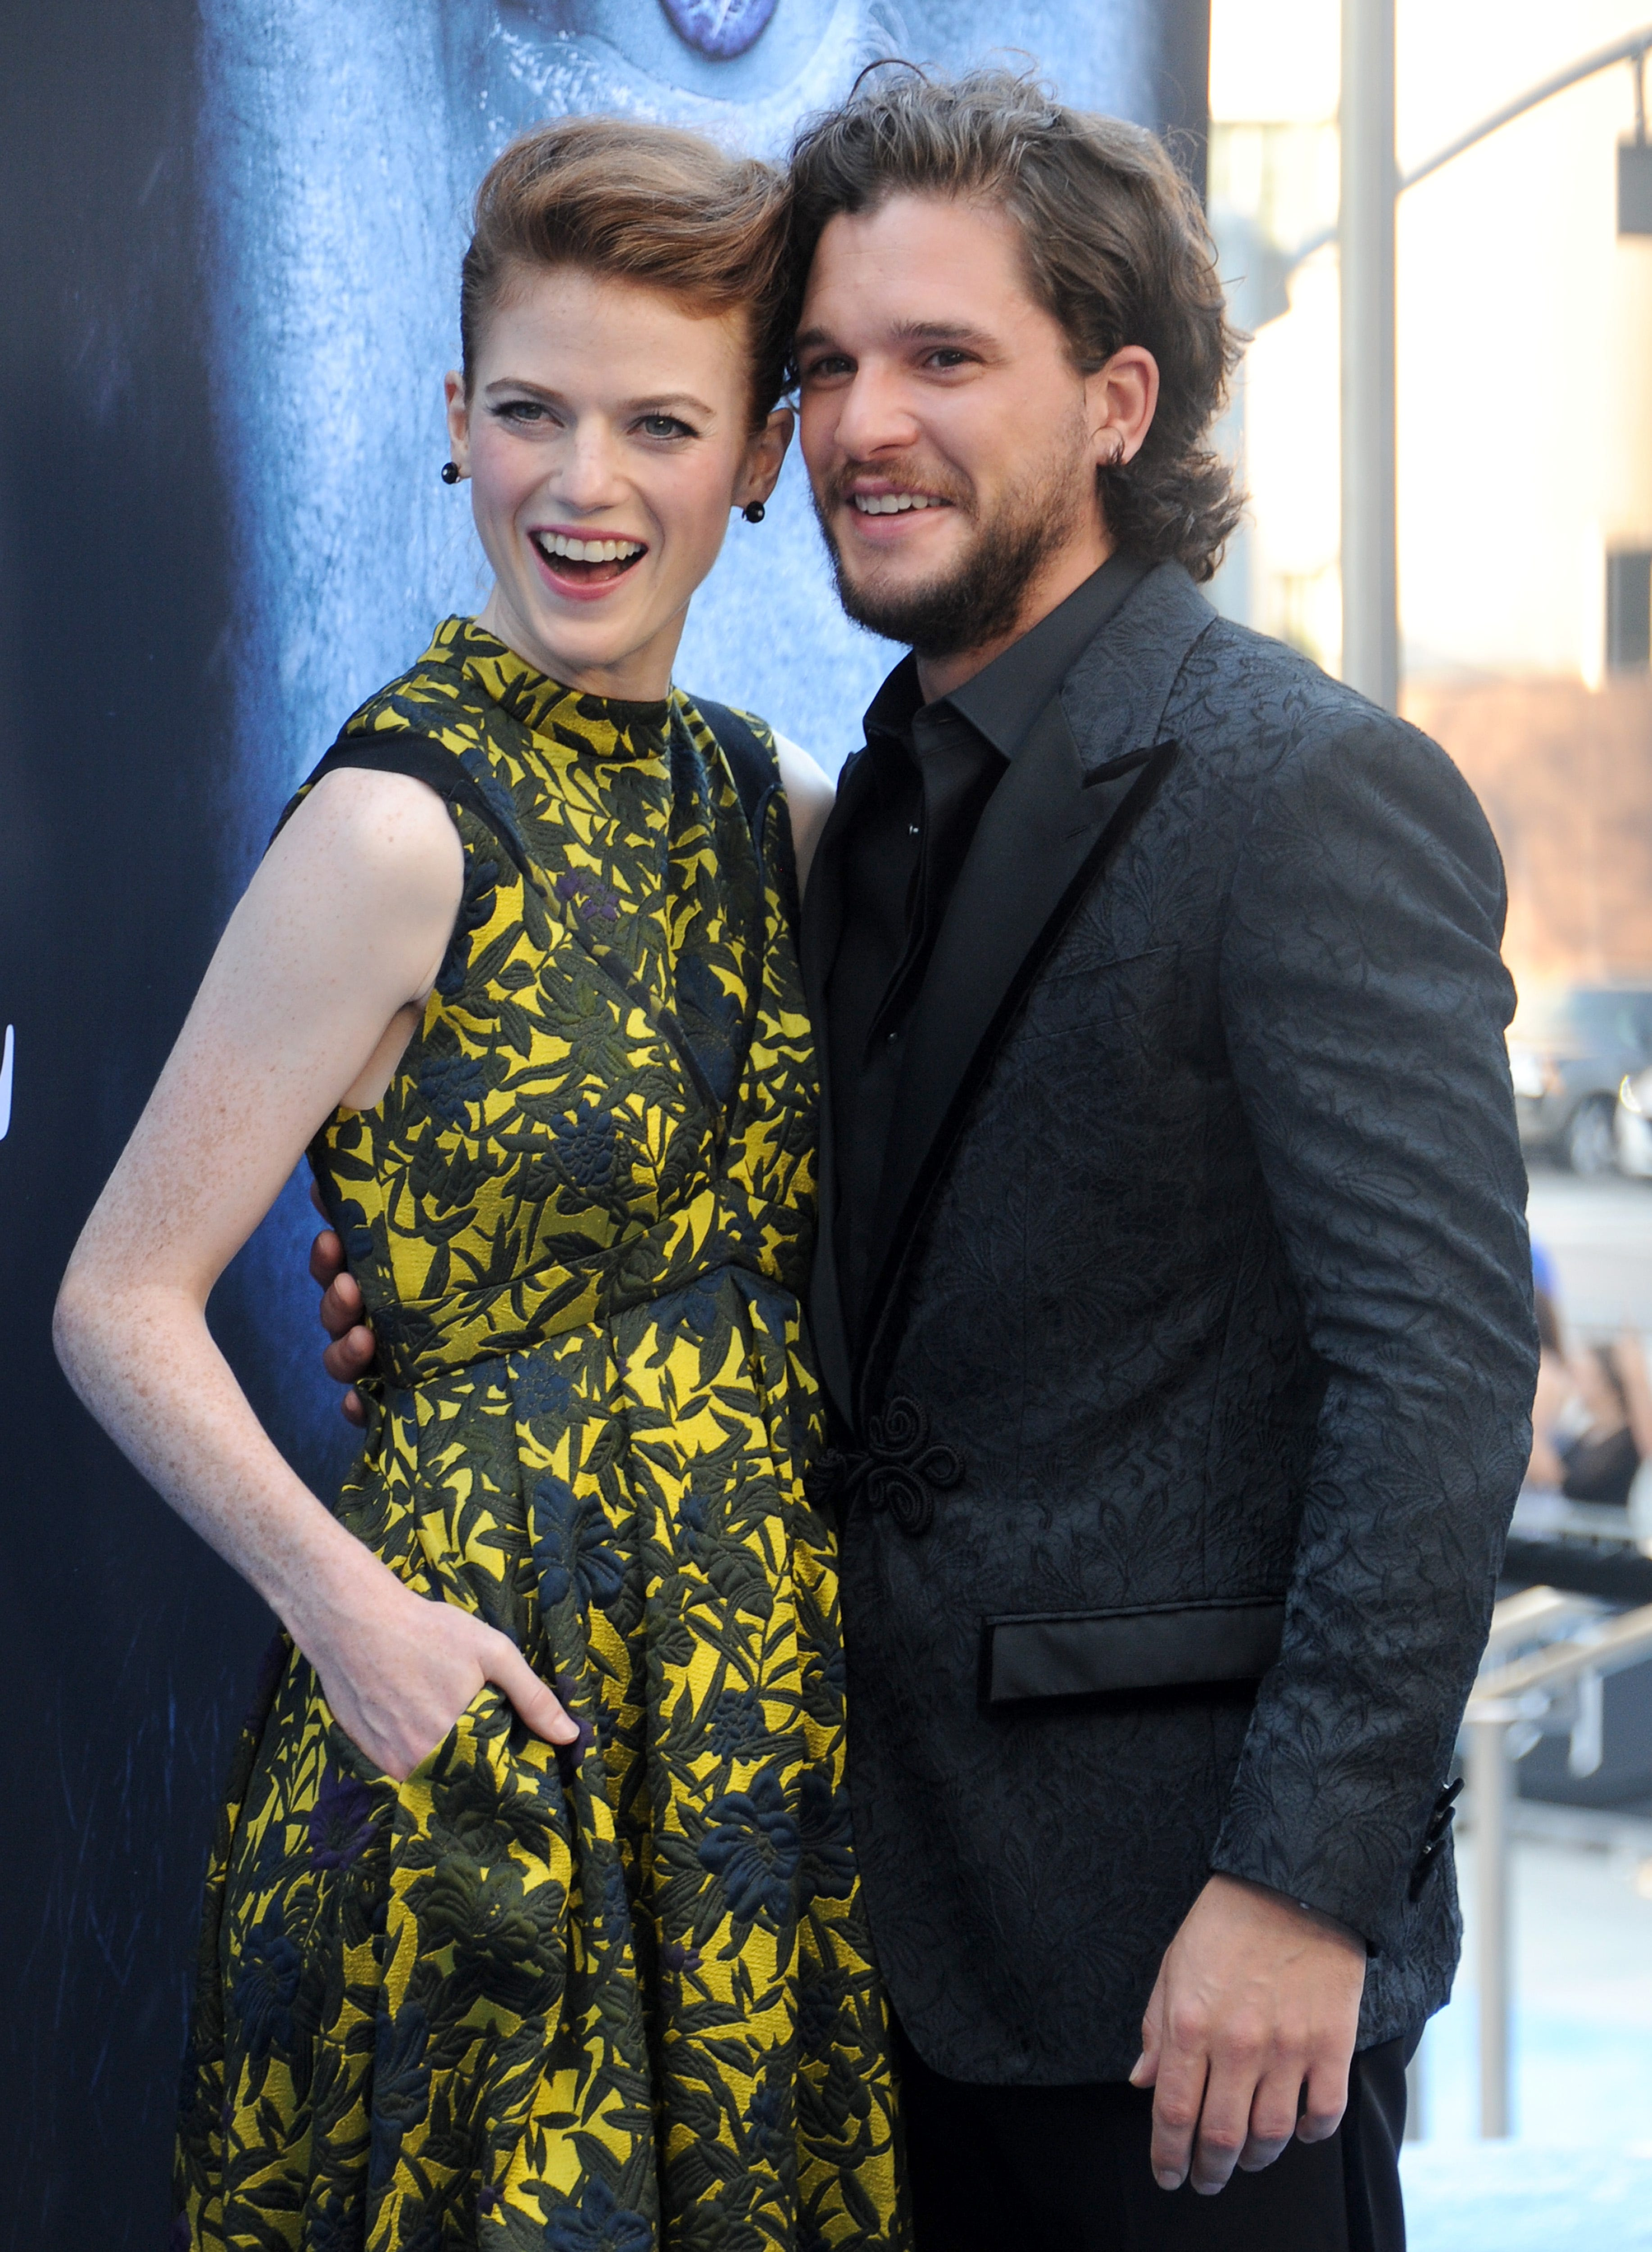 Star of the Game of Thrones Keith Harington marries Rose Leslie 09/26/2017 46